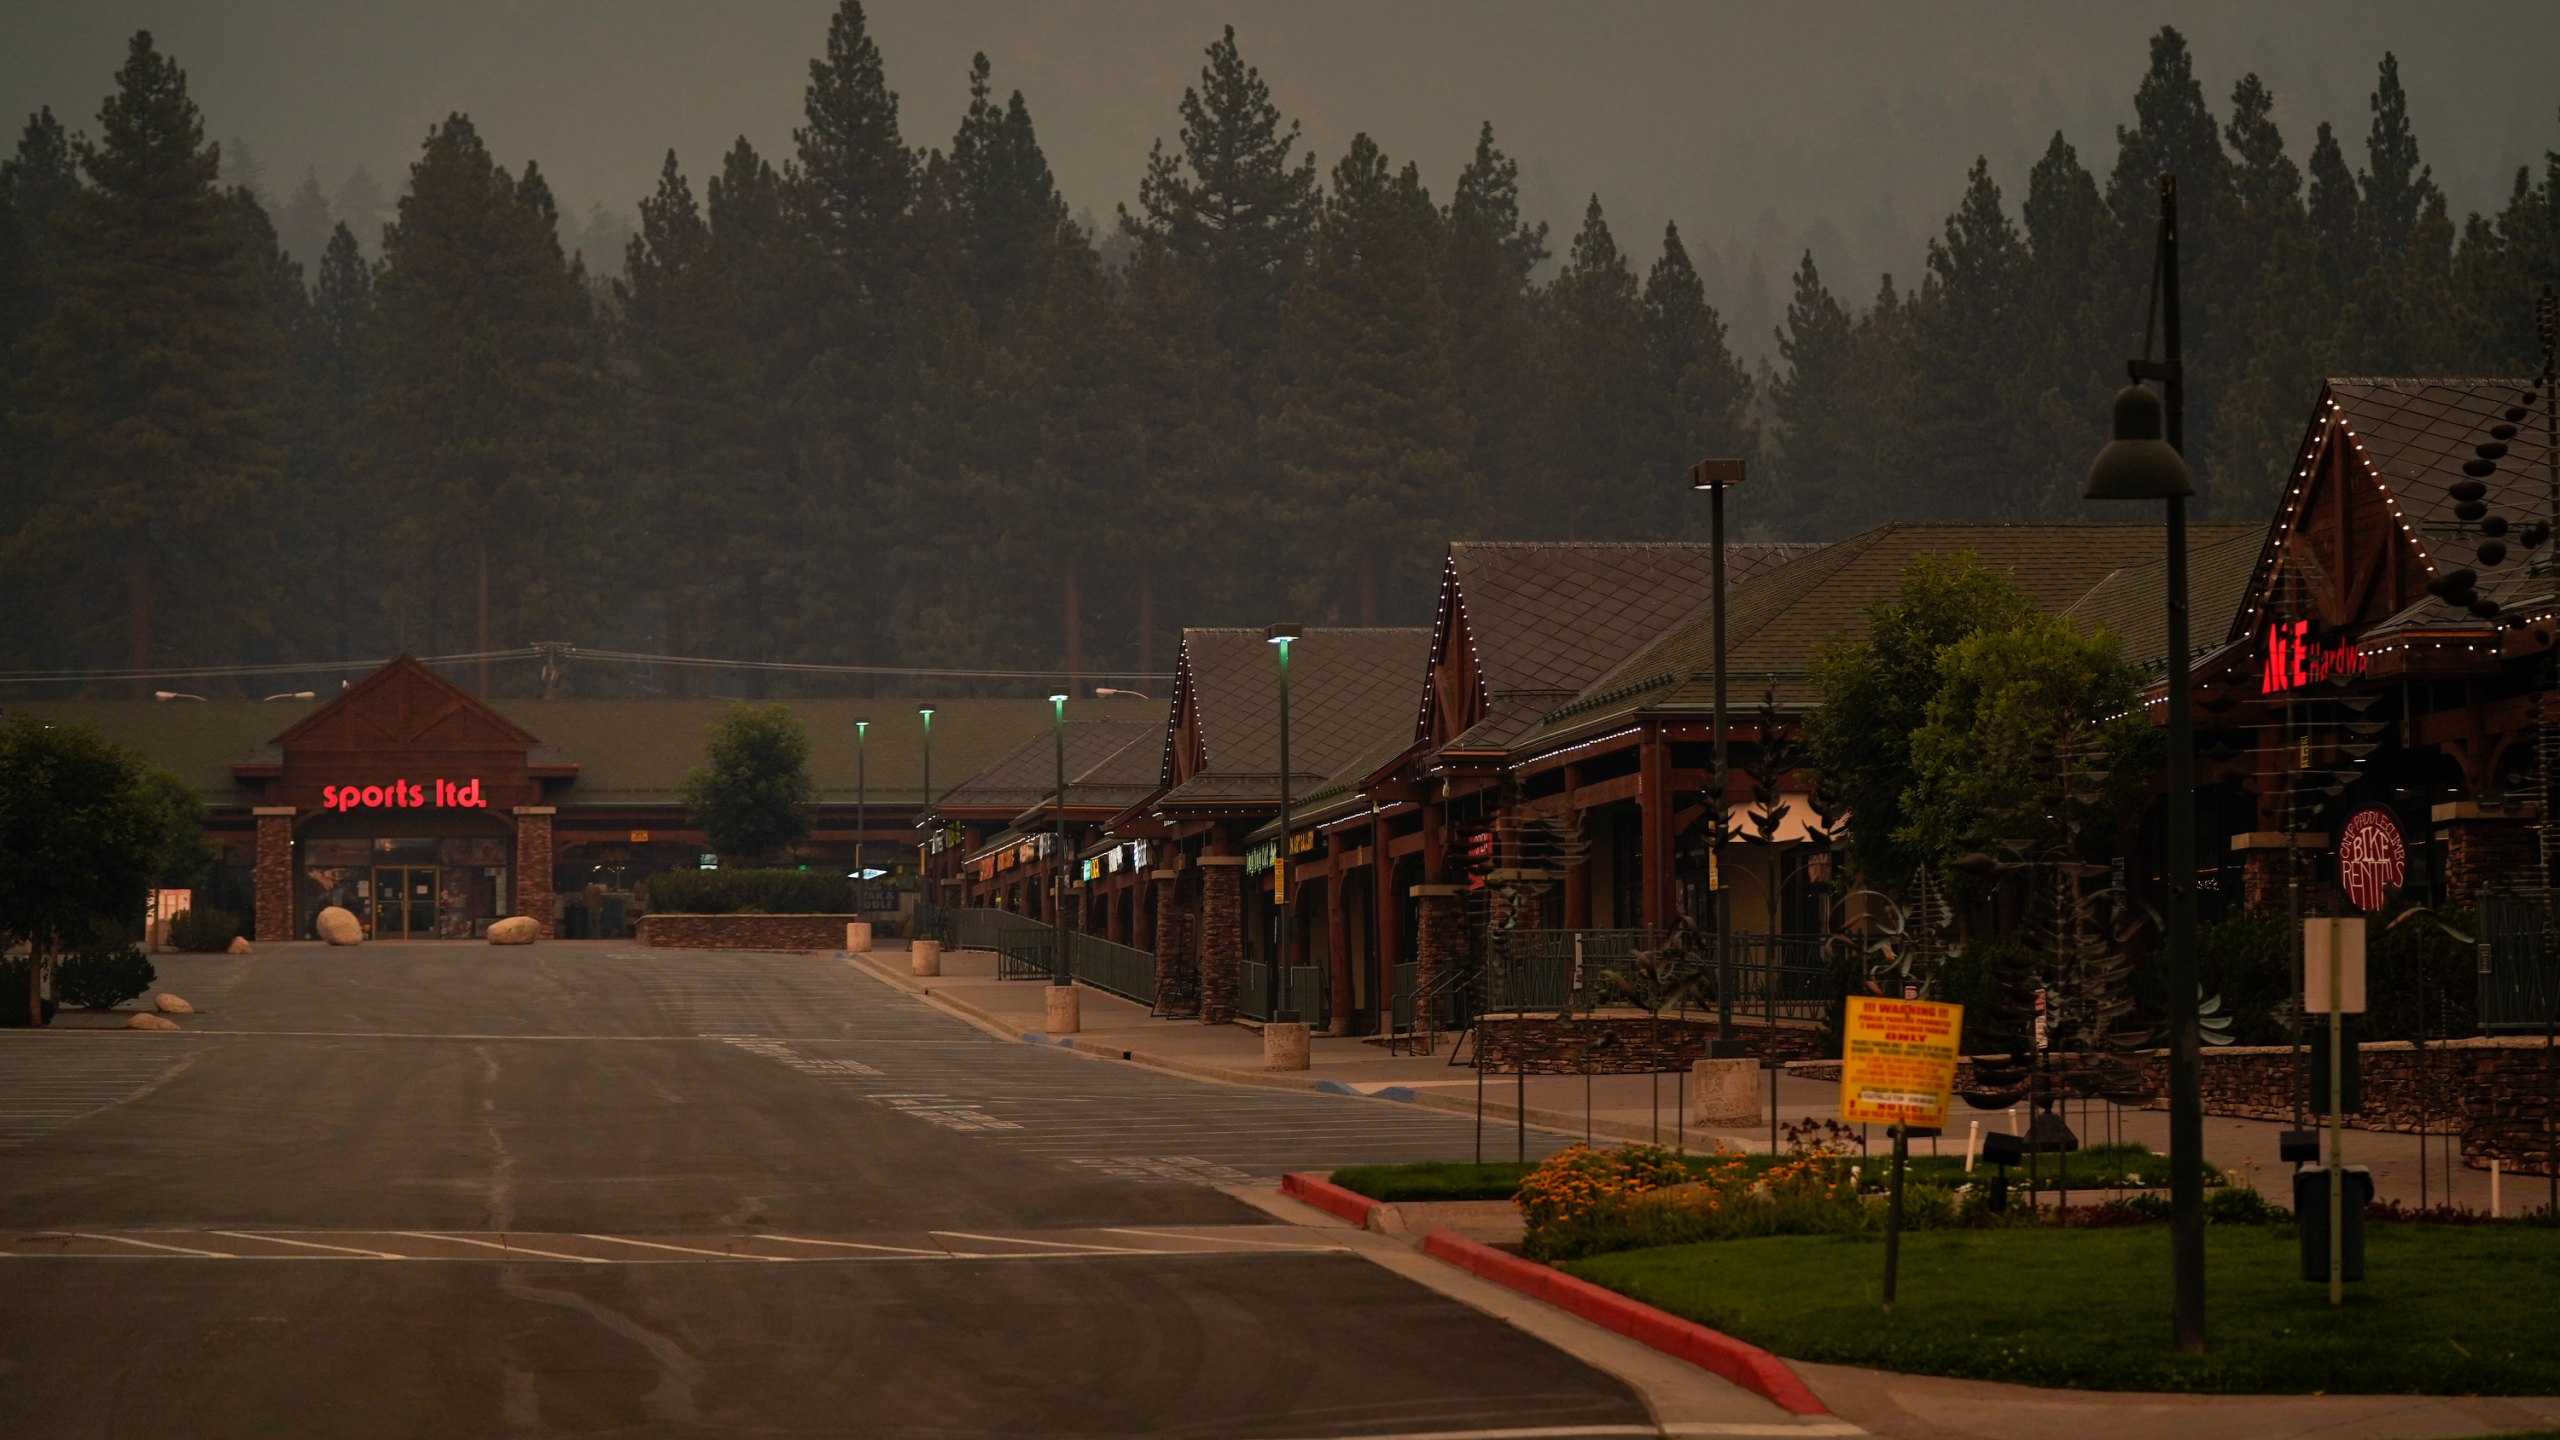 In this Tuesday, Aug. 31, 2021, file photo, a shopping mall is empty after a mandatory evacuation was ordered due to the Caldor Fire in South Lake Tahoe, Calif. State fire officials said evacuation orders for the area were reduced to warnings as of 3 p.m. on Sunday, Sept. 5. Some 22,000 people had been forced to flee the popular resort and nearby areas last week as the Caldor Fire roared toward it. (AP Photo/Jae C. Hong, File)